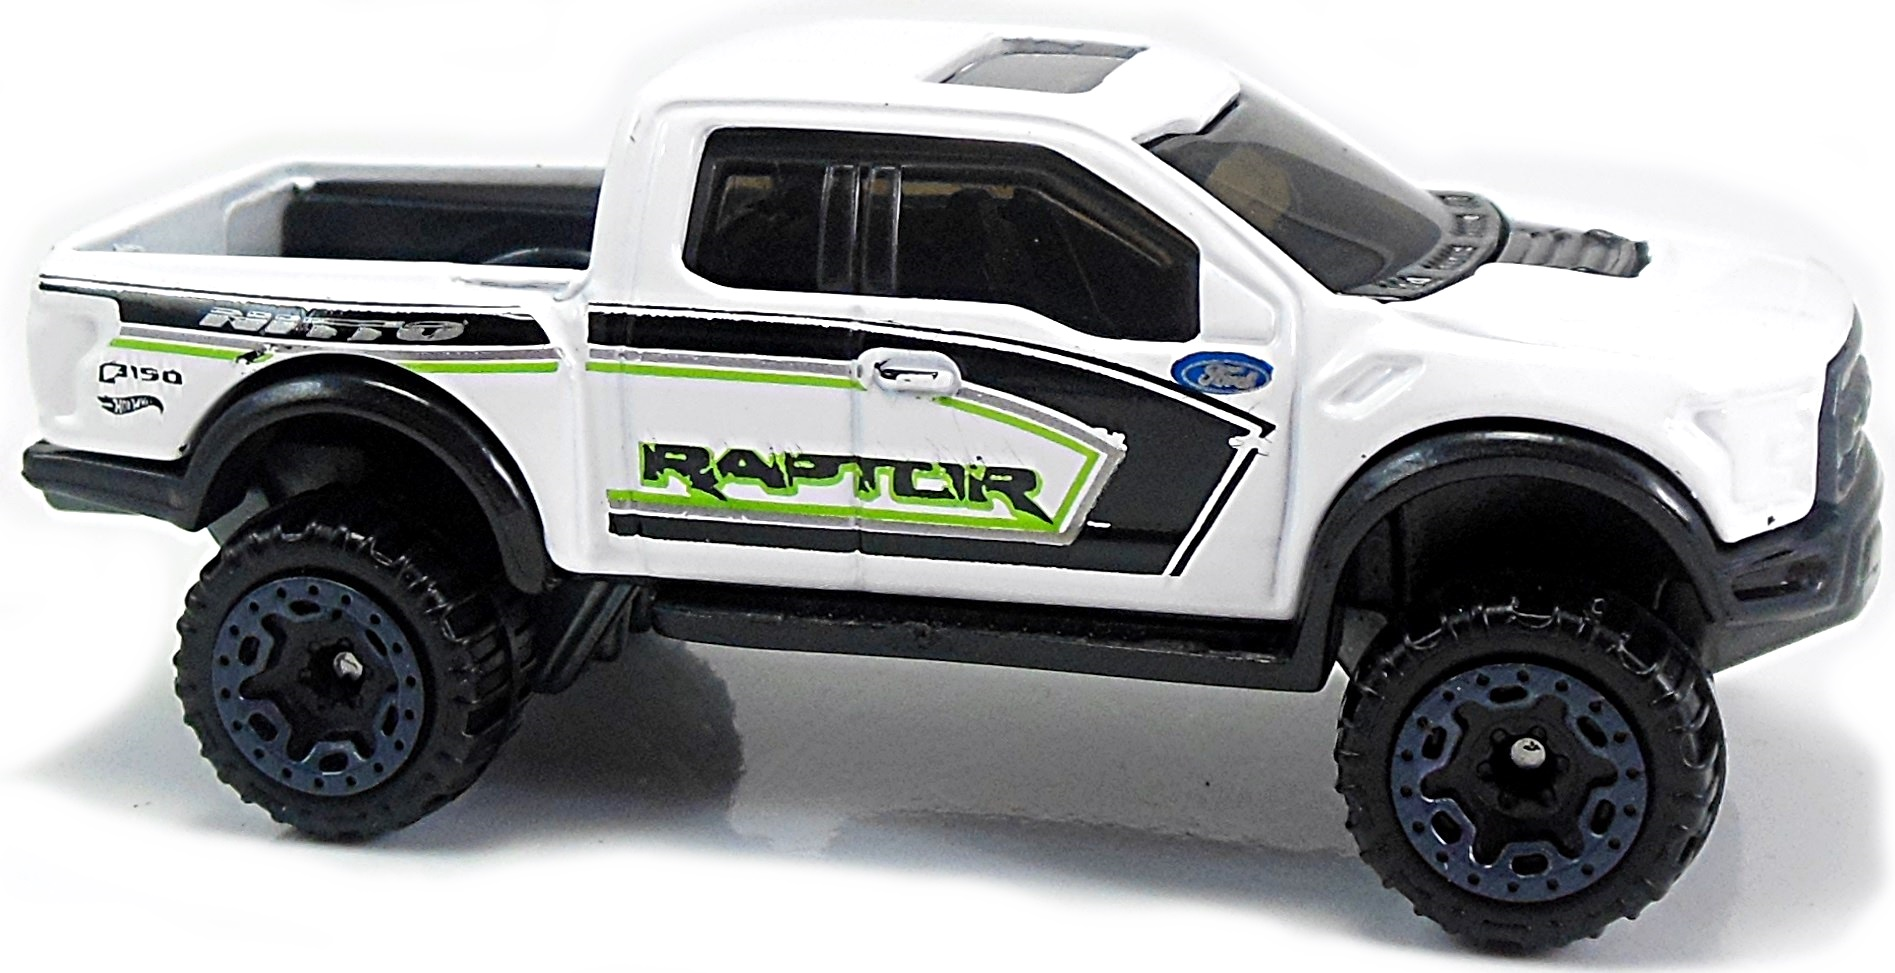 17 ford f 150 raptor 74mm 2016 hot wheels newsletter c mf red black base and int clear windows black and white stripes raptor and nitro on sides or6or mal hw hot trucks 10 2017 1 2 voltagebd Images